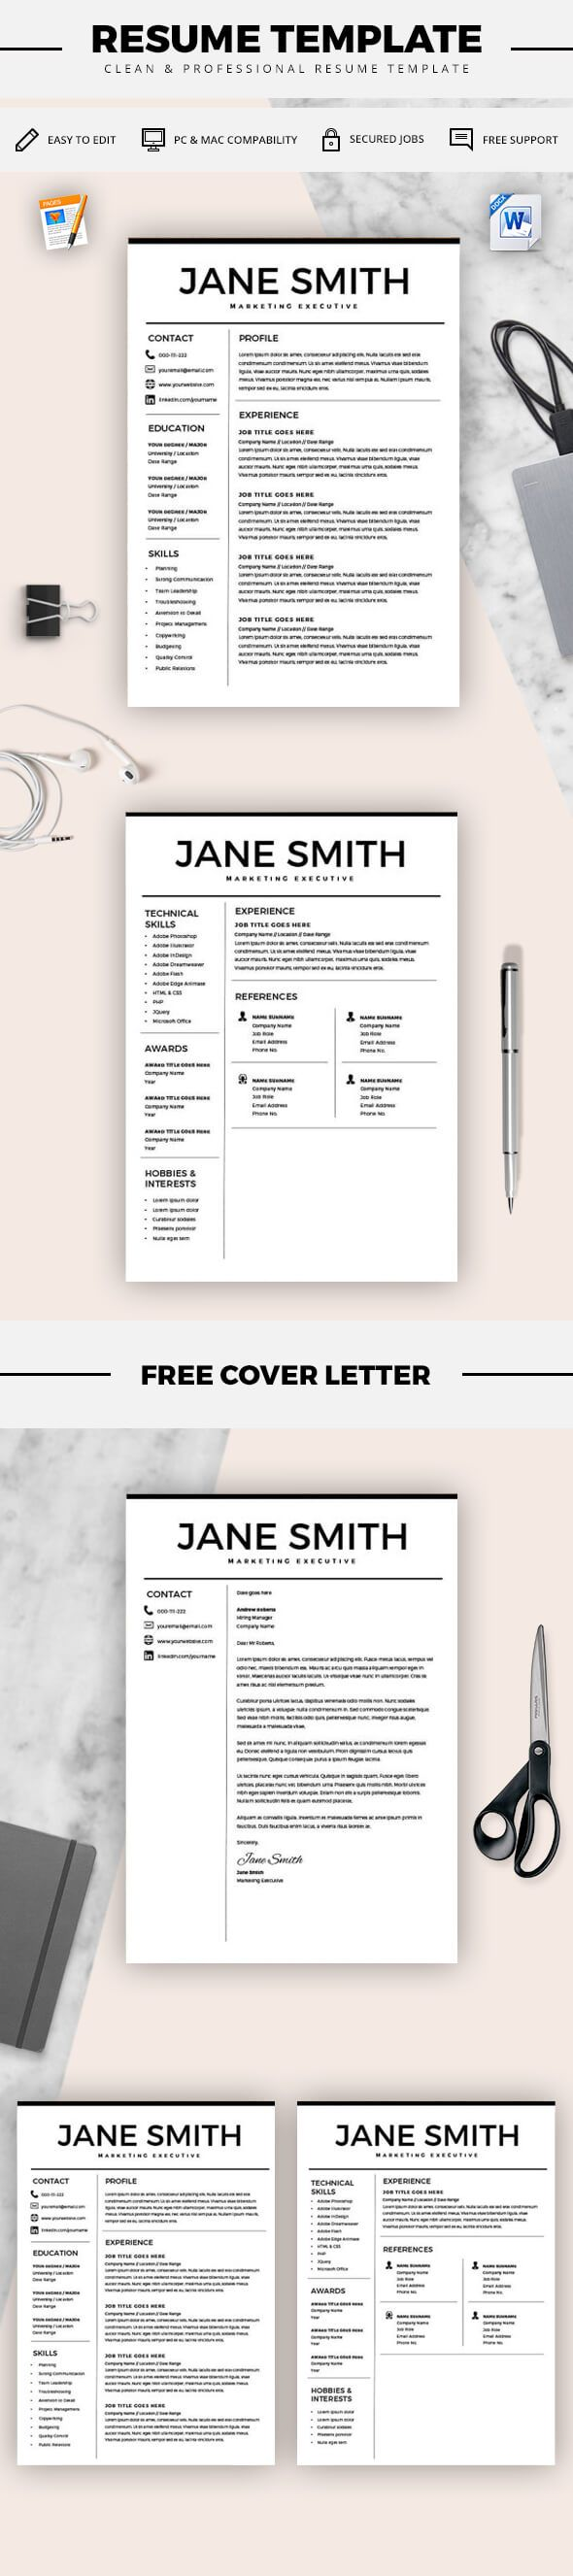 resume for microsoft word minimal resume template cv template cover letter for ms - Microsoft Resume Template